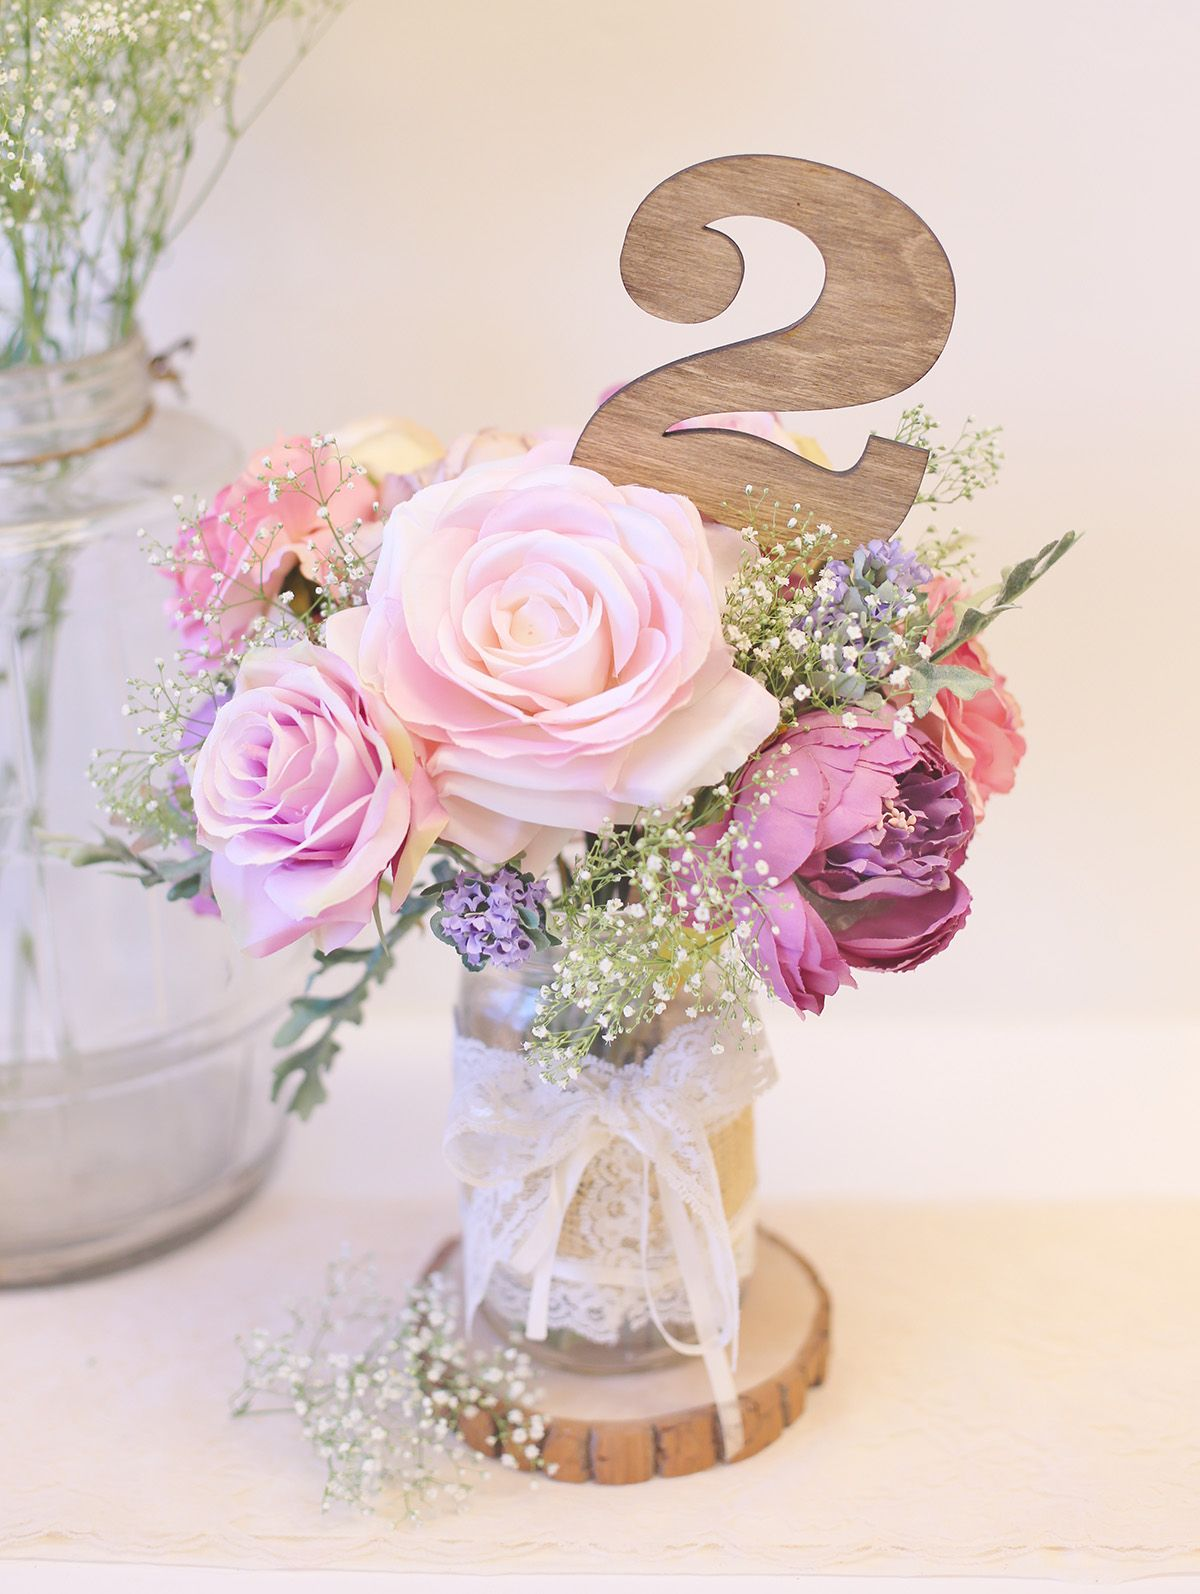 Home & Garden 1 To 20 Wedding Wooden Place Card Holder Table Number Stands Rustic Wedding Decoration Centerpieces Wedding Party Decor